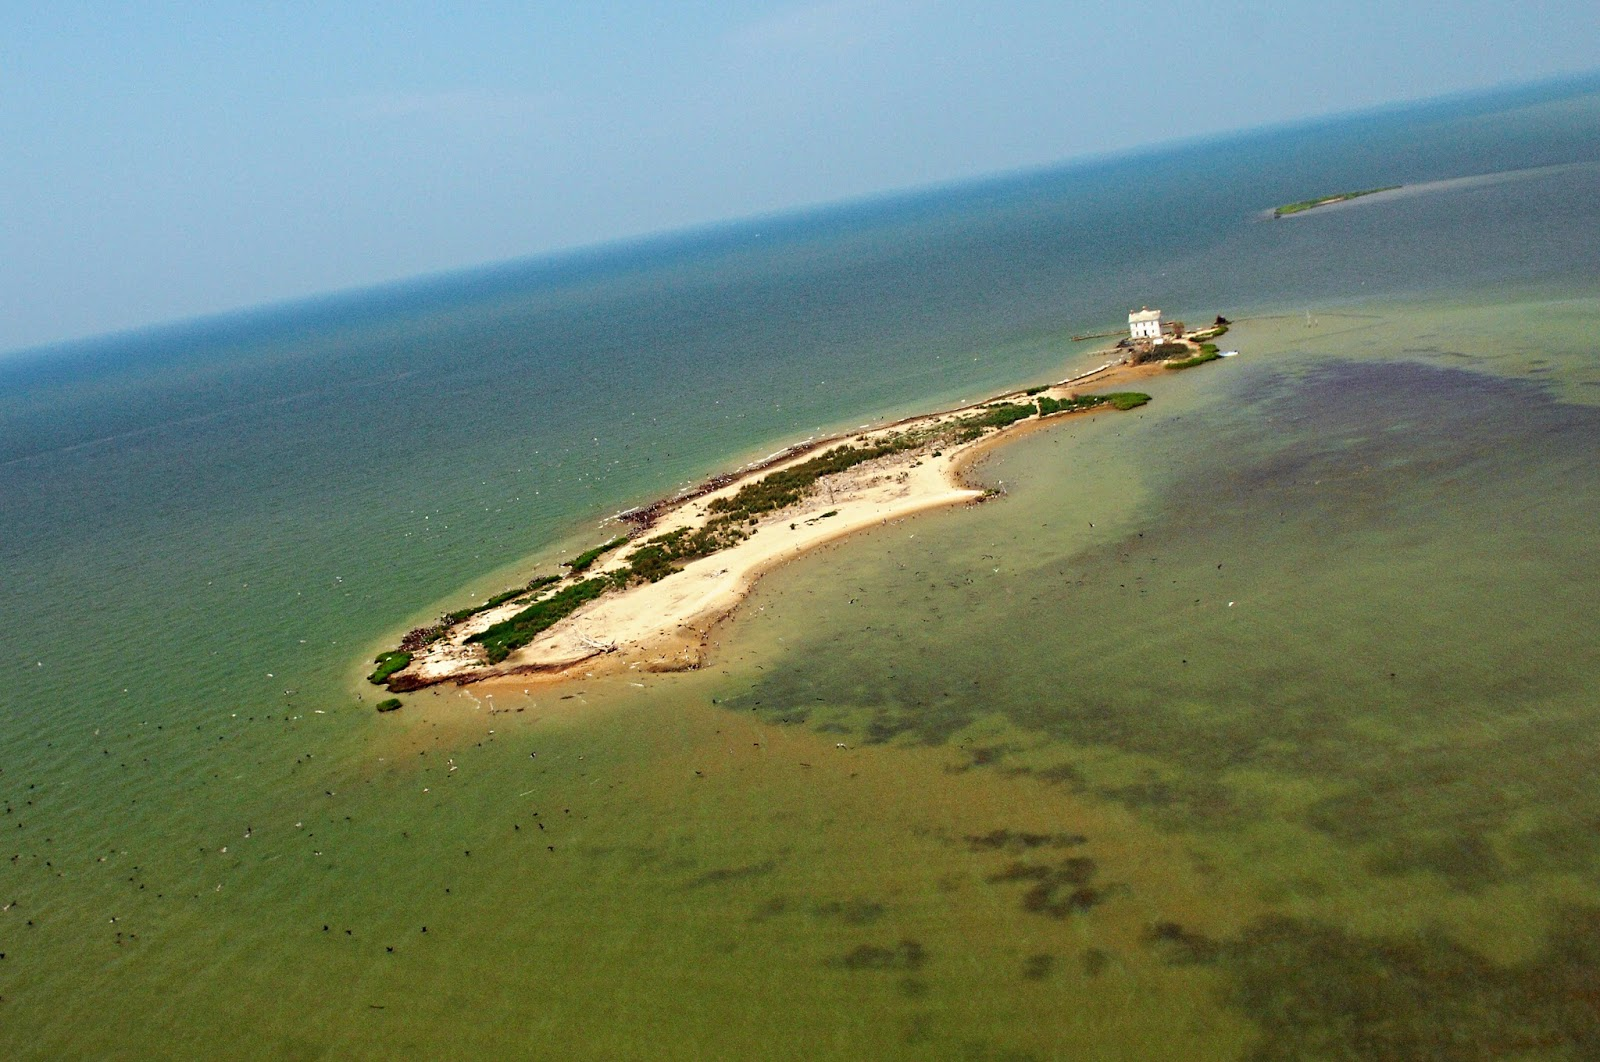 Deserted Places Holland Island in the Chesapeake Bay